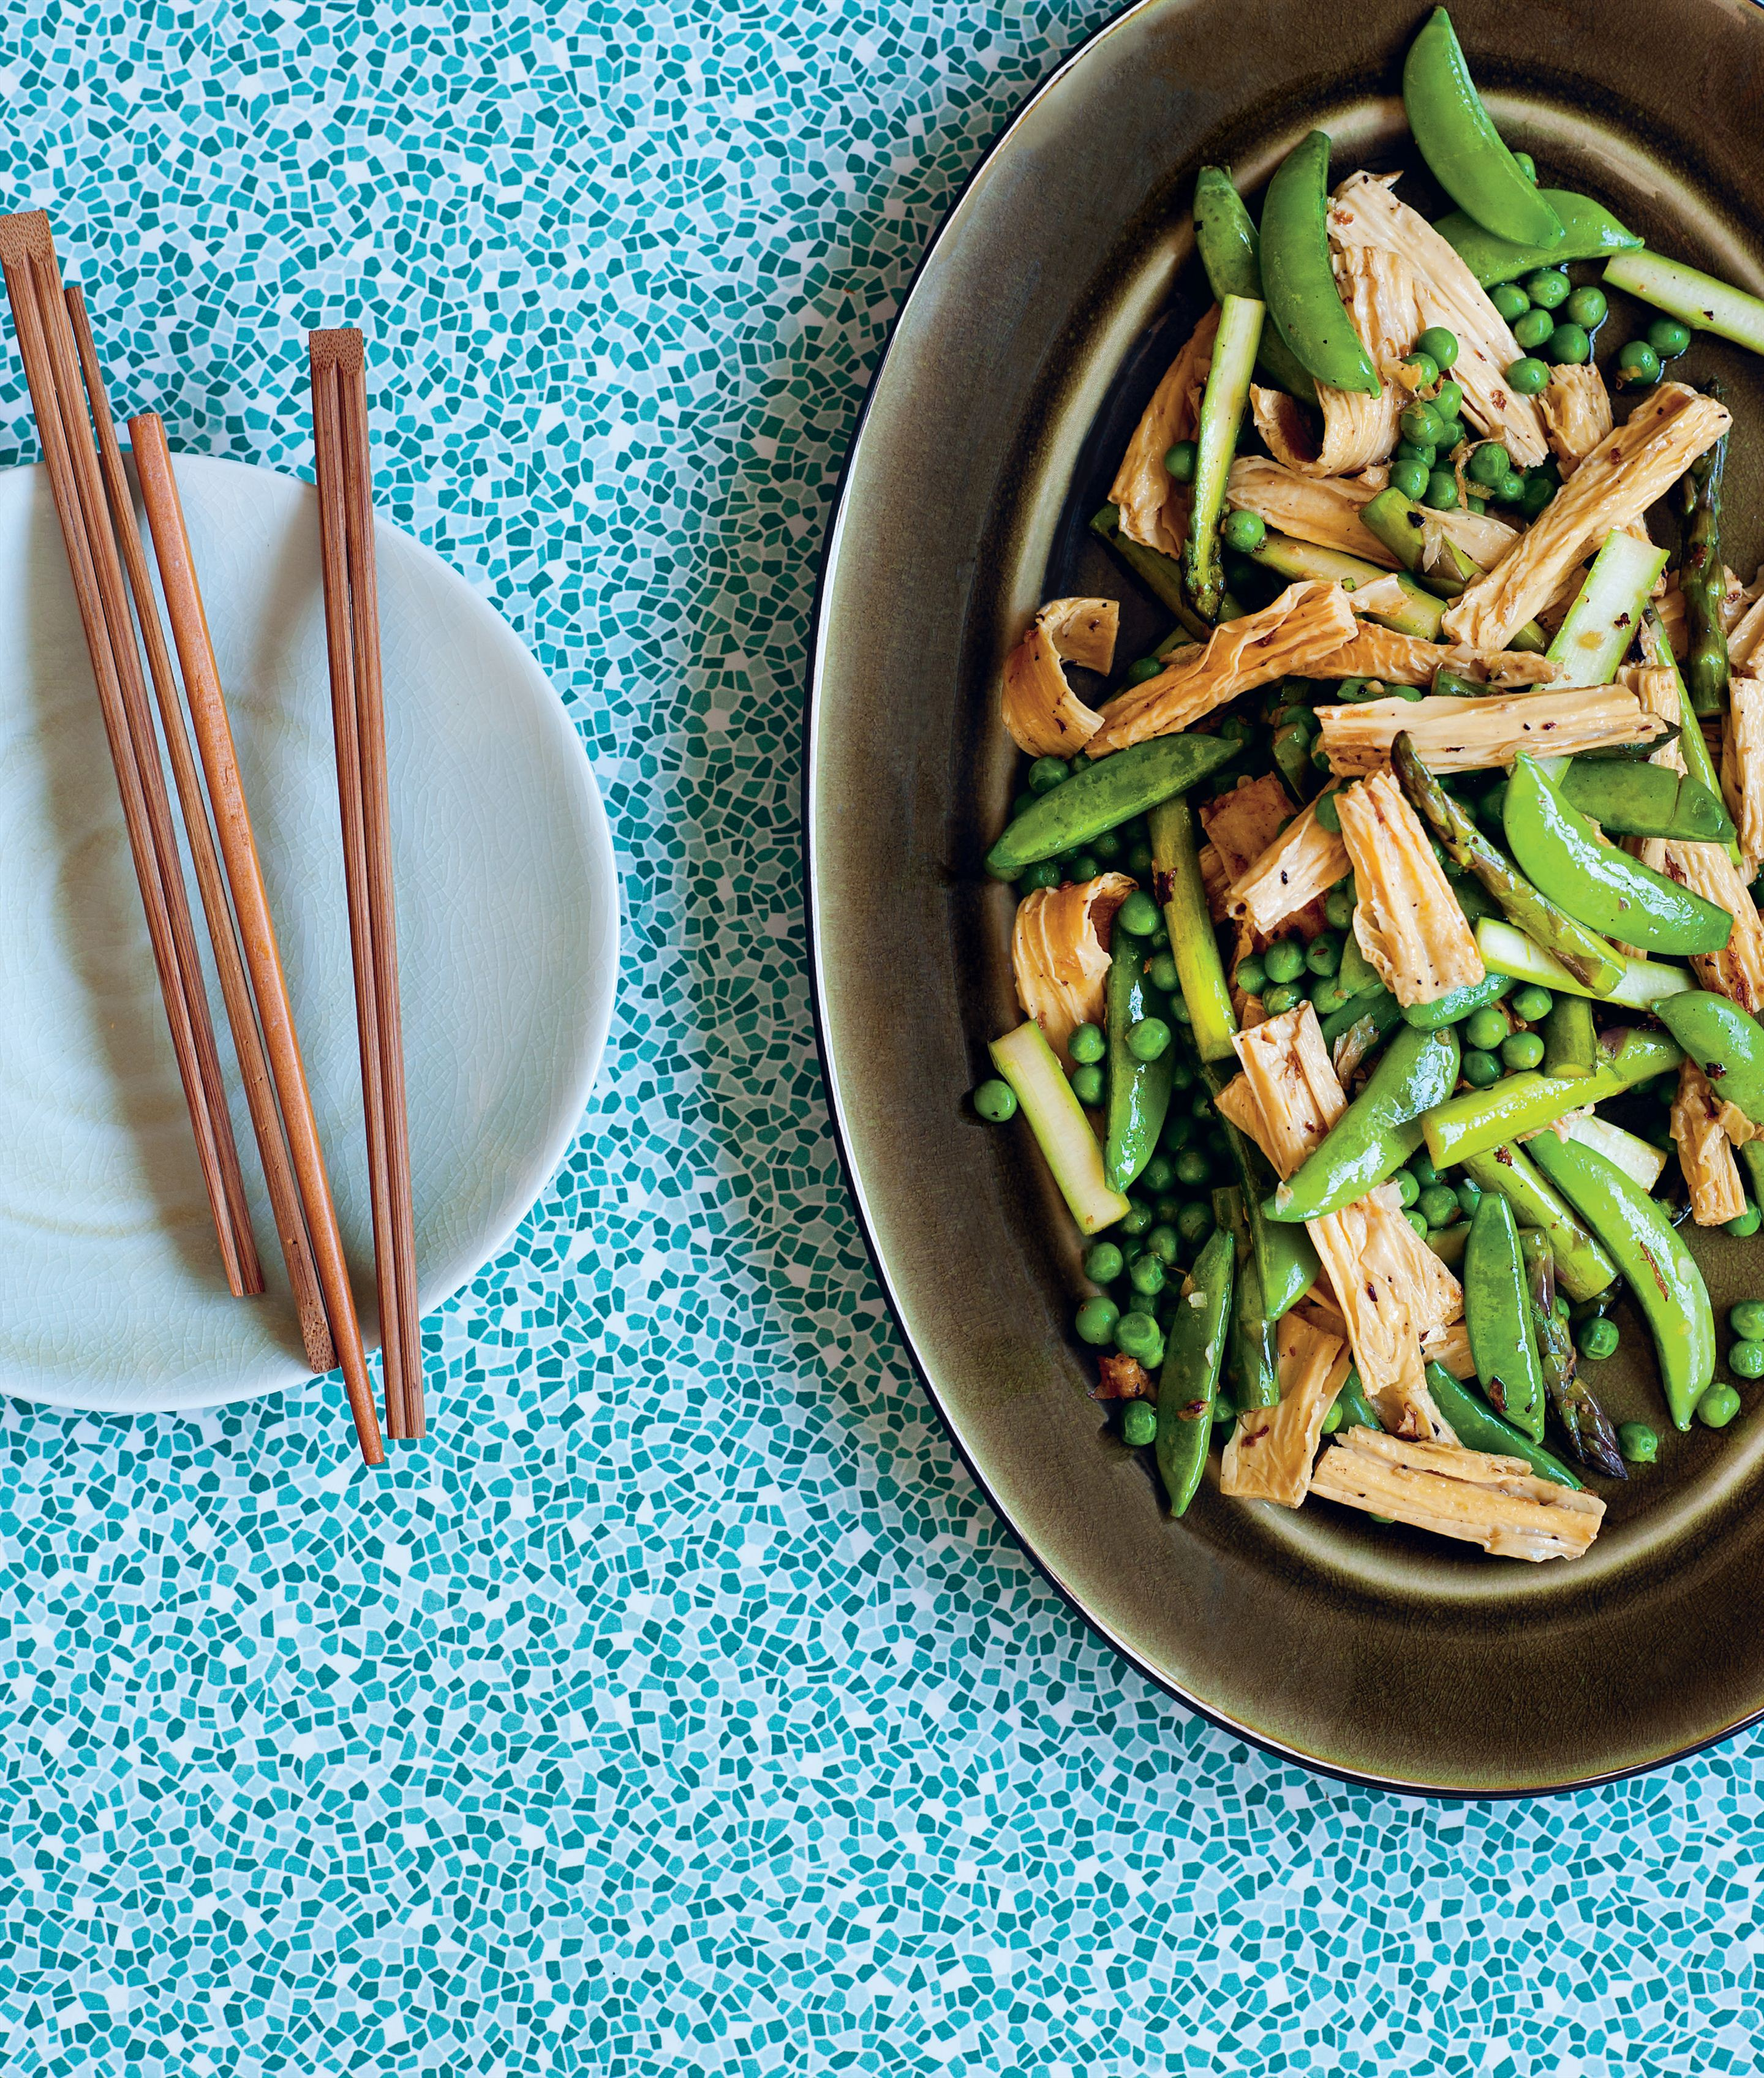 Stir-fried tofu sticks with green vegetables